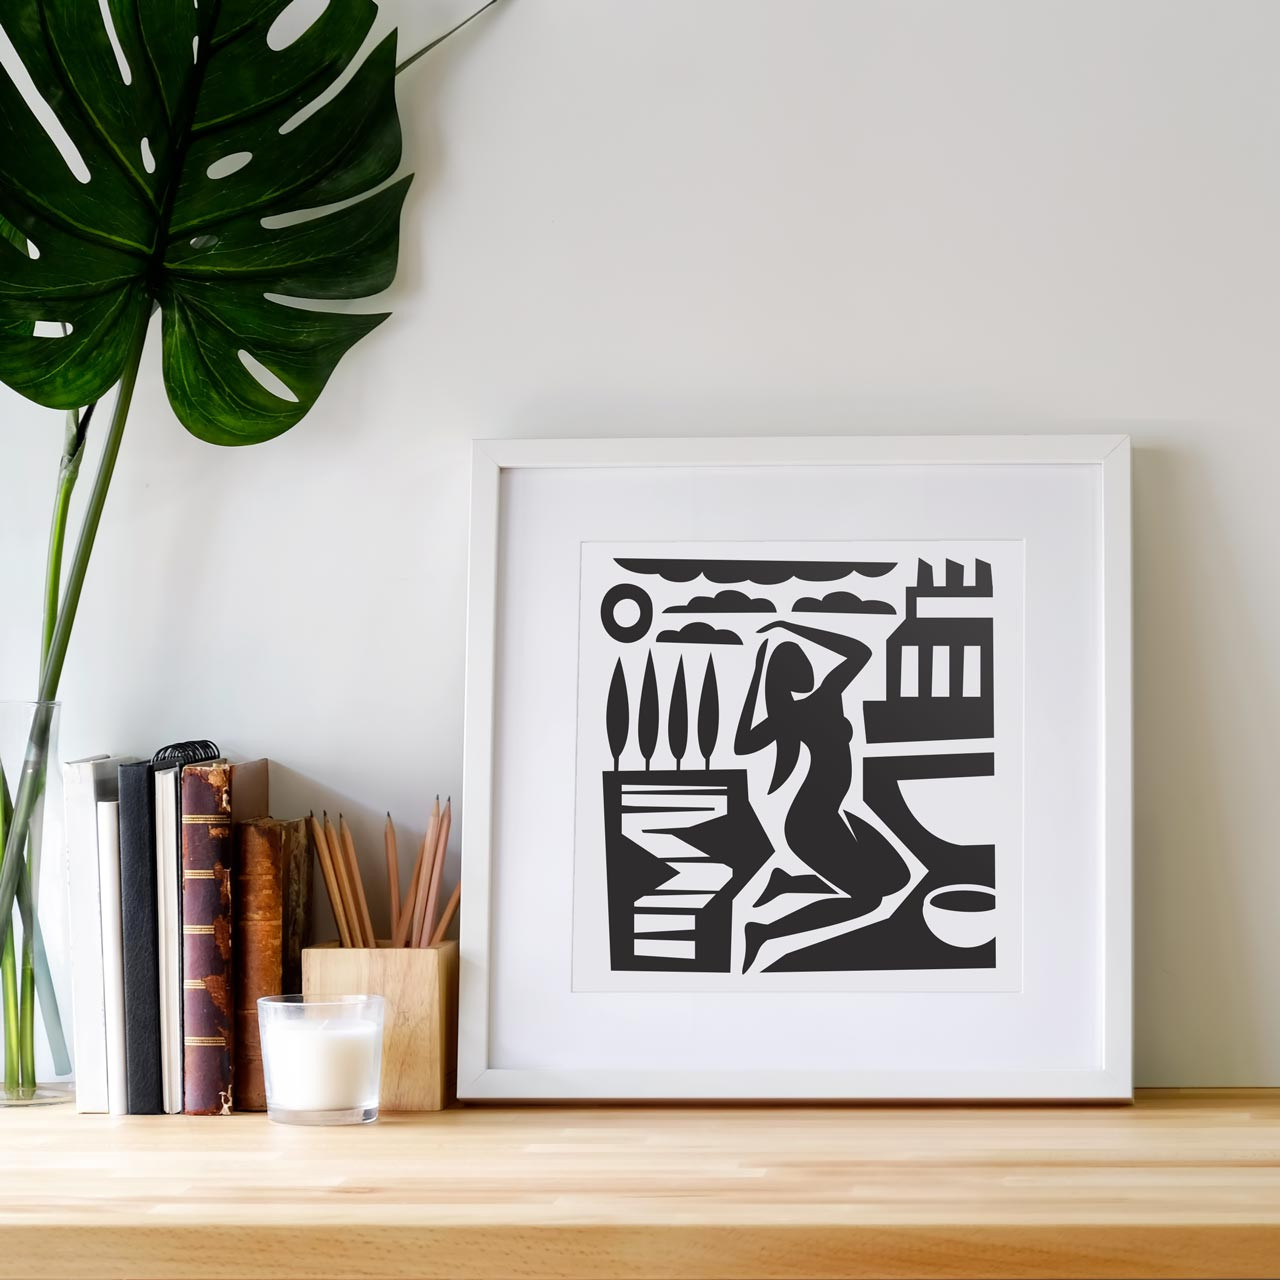 'Desert Woman' Art Print from The Printed Home